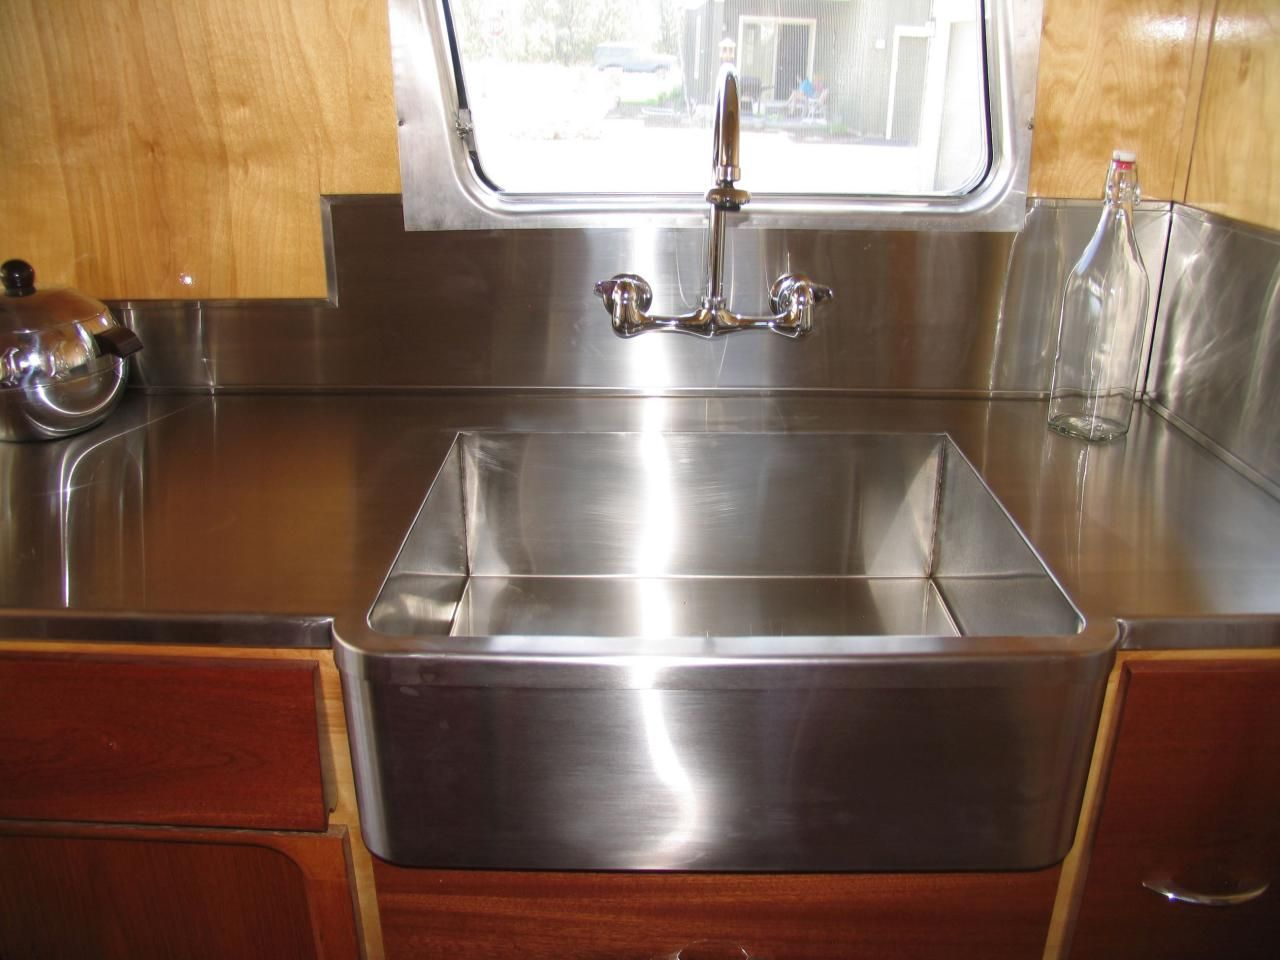 Make Stainless Steel Countertop Stainless Steel Countertops Make For Easy Cleanup And Give Vintage